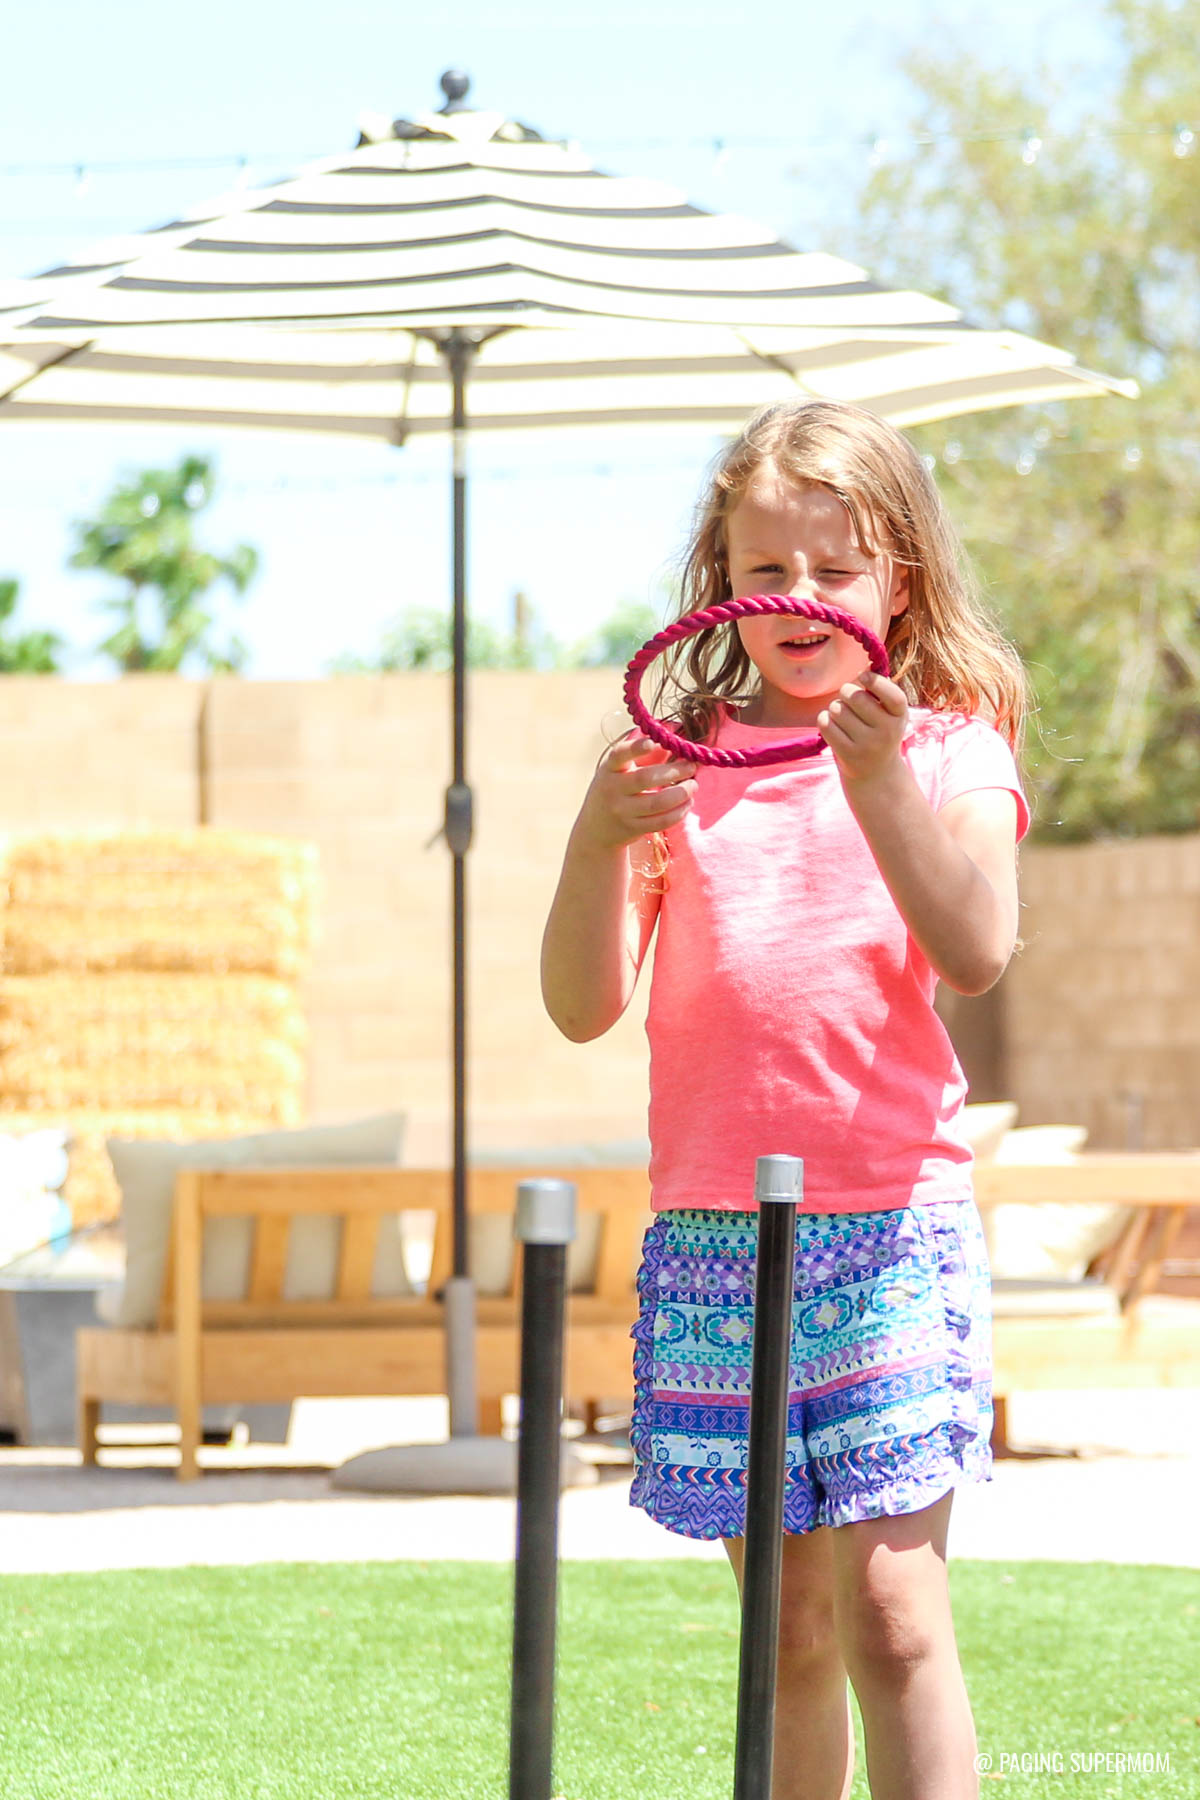 DIY Backyard Games - Ring Toss Plans from @HomeDepot via @PagingSupermom